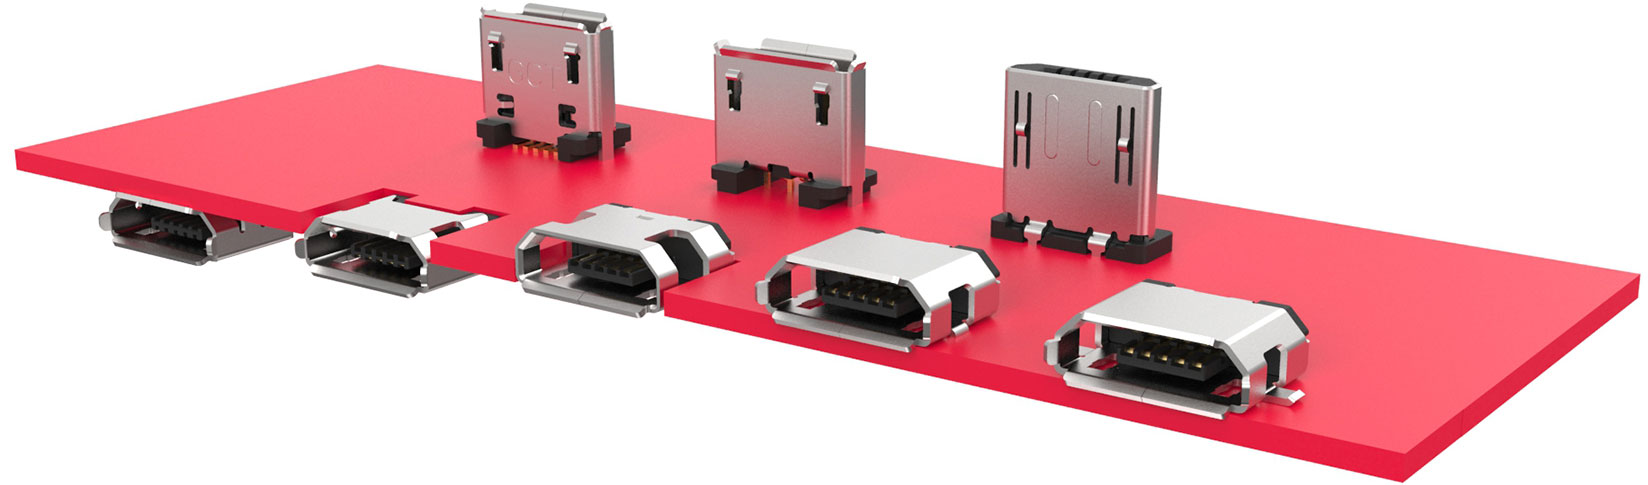 Micro USB PCB Orientations and Mounting Types